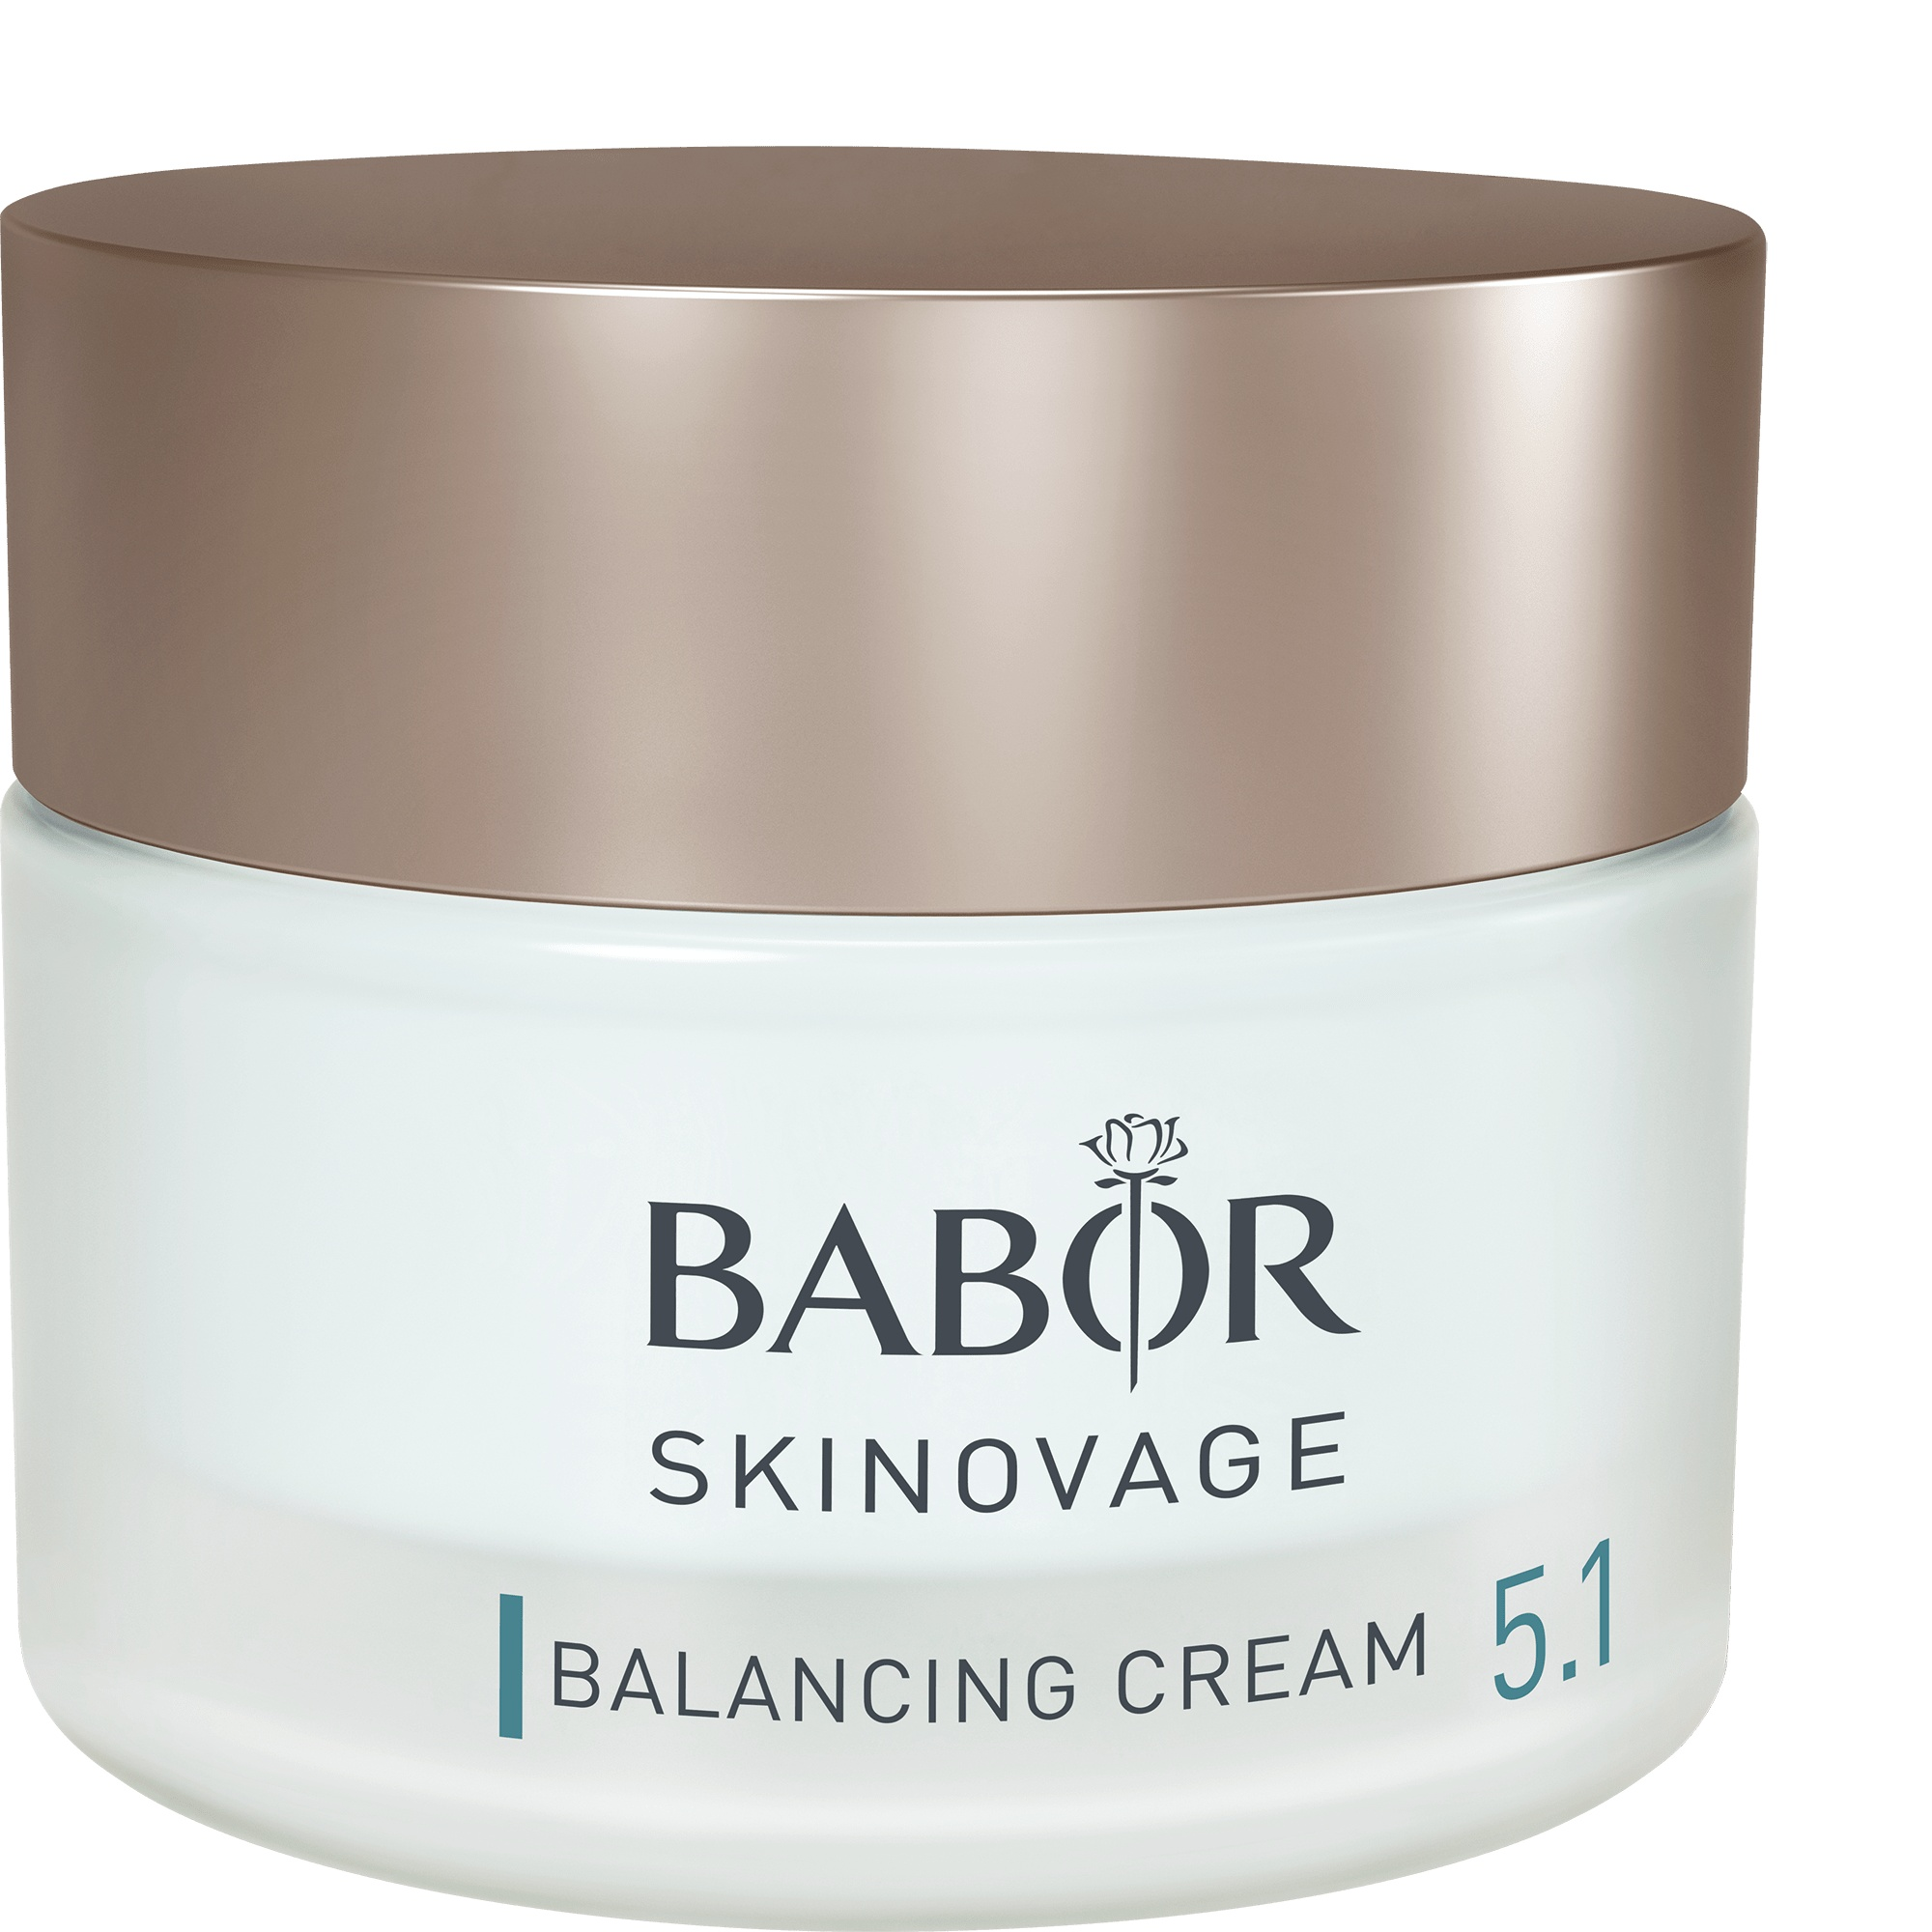 Skinovage Balancing Cream 50 ml